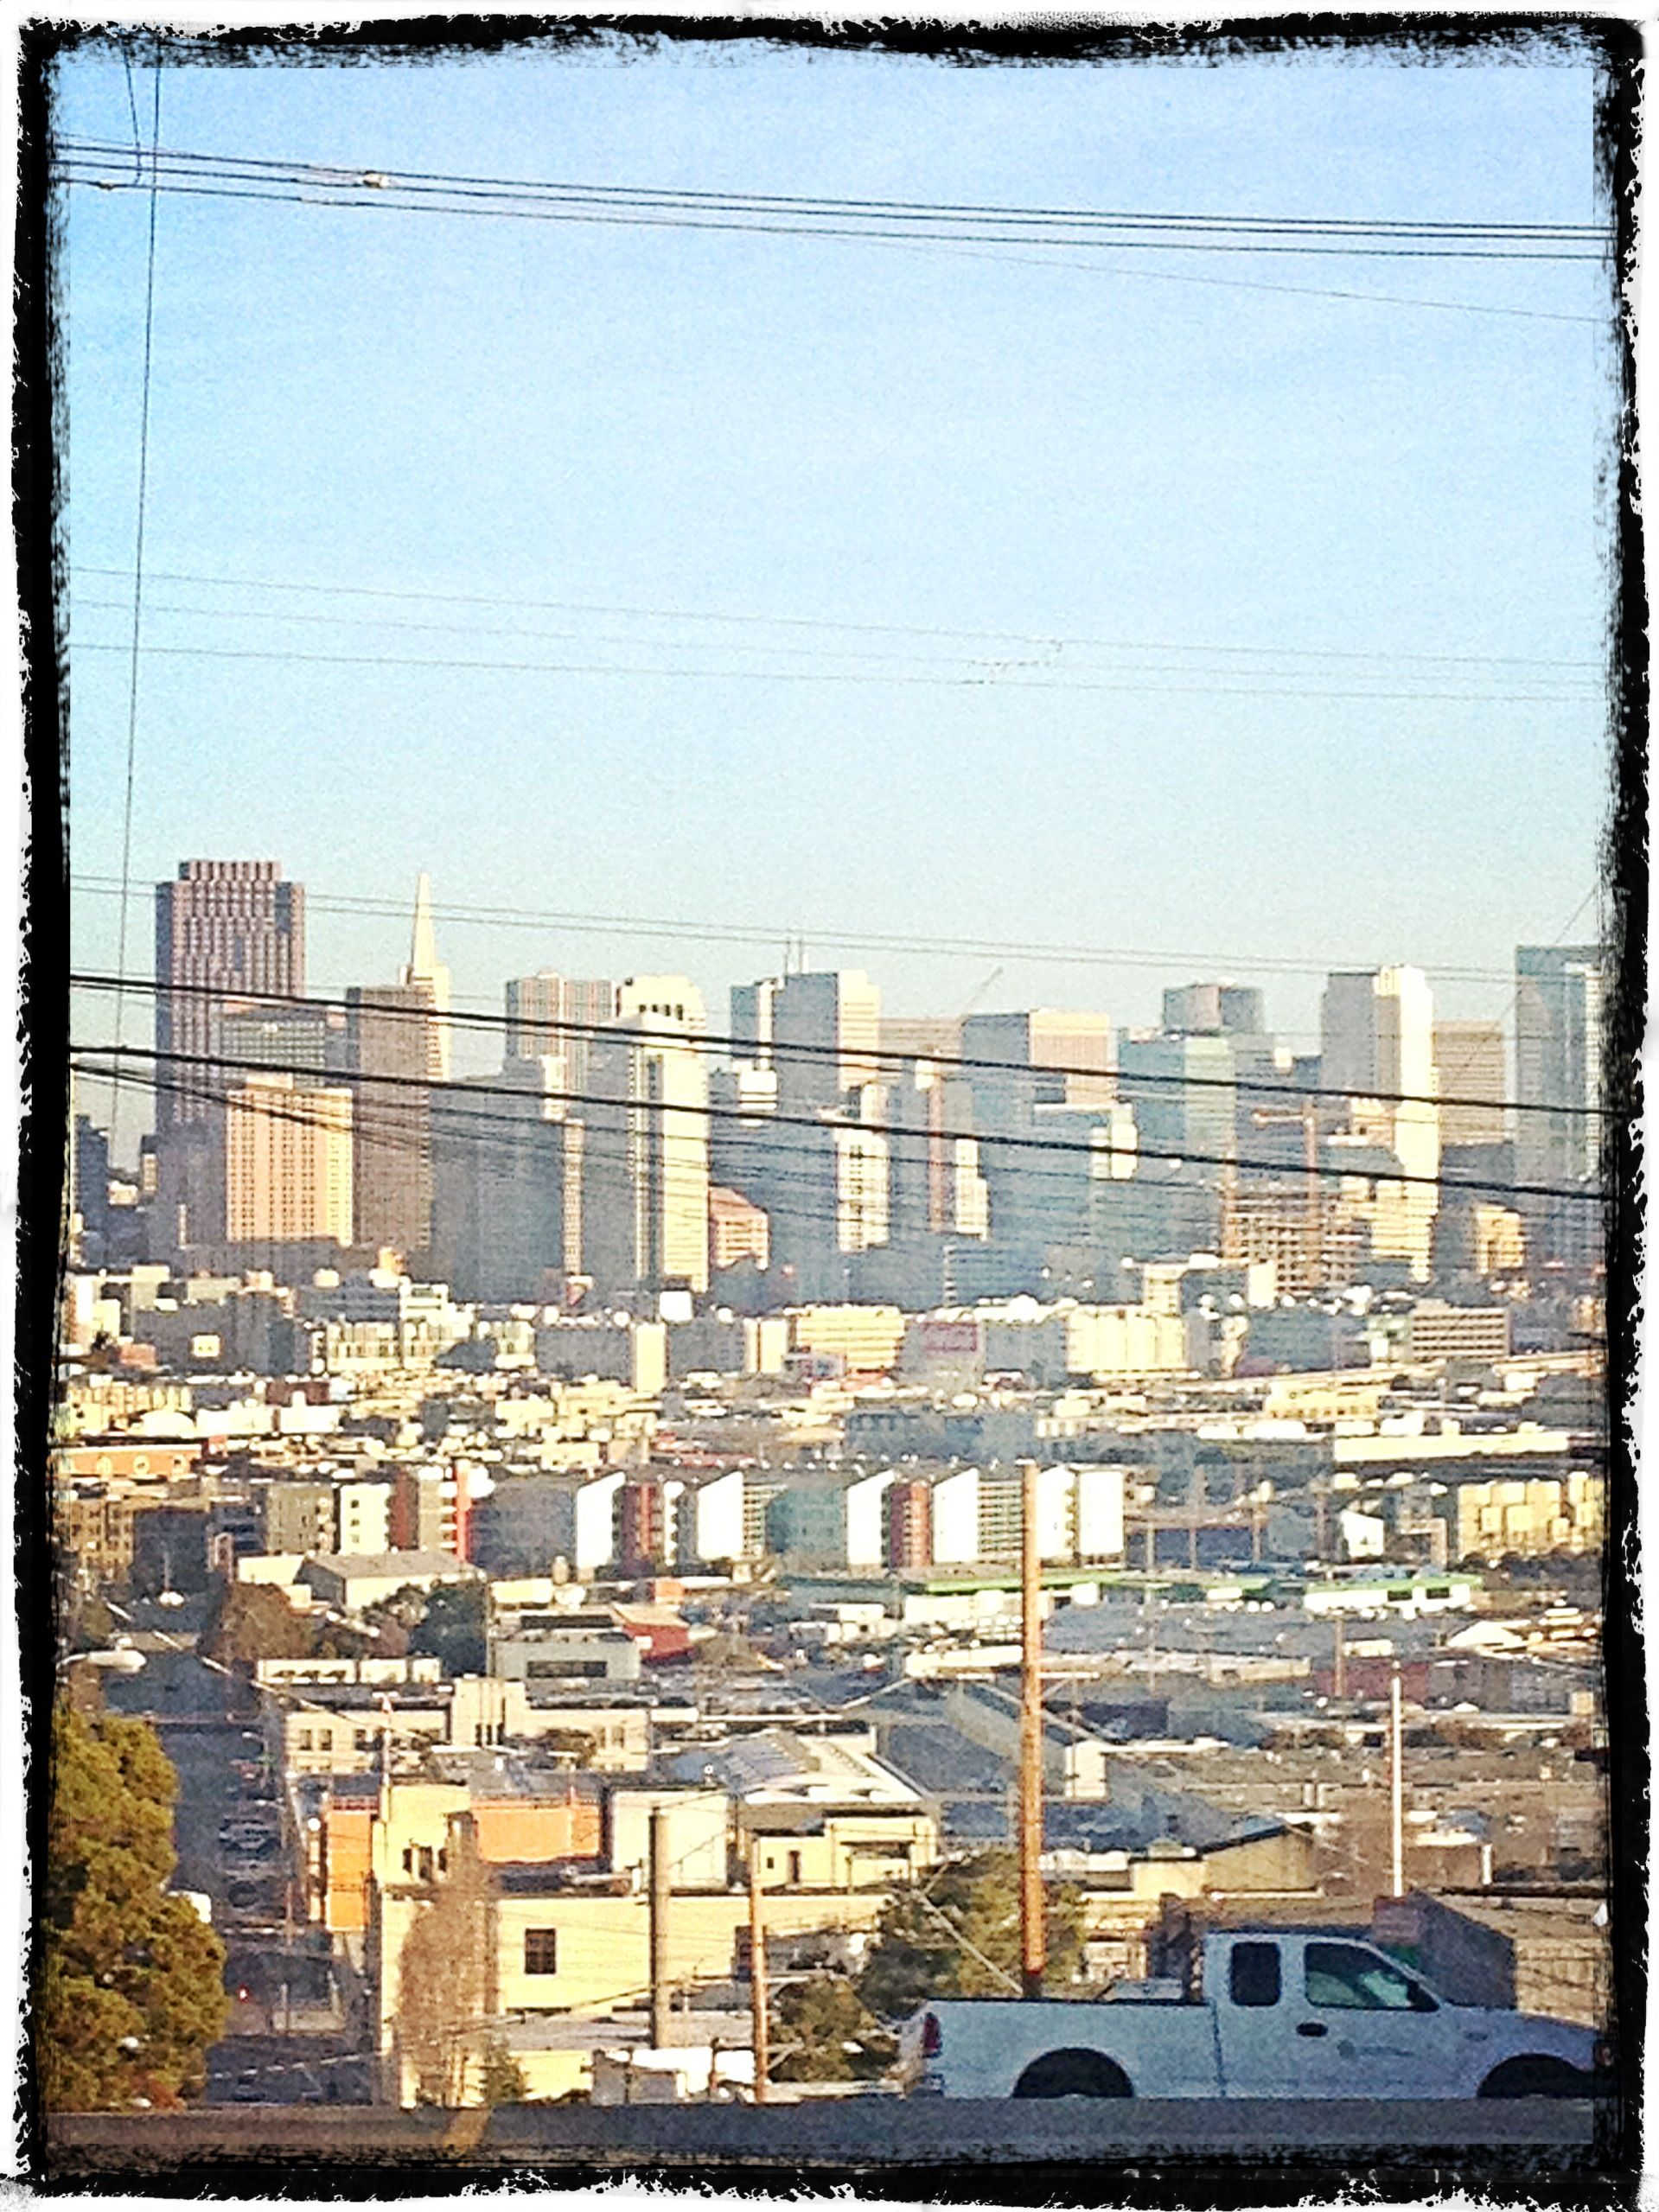 San Francisco on a beautiful day